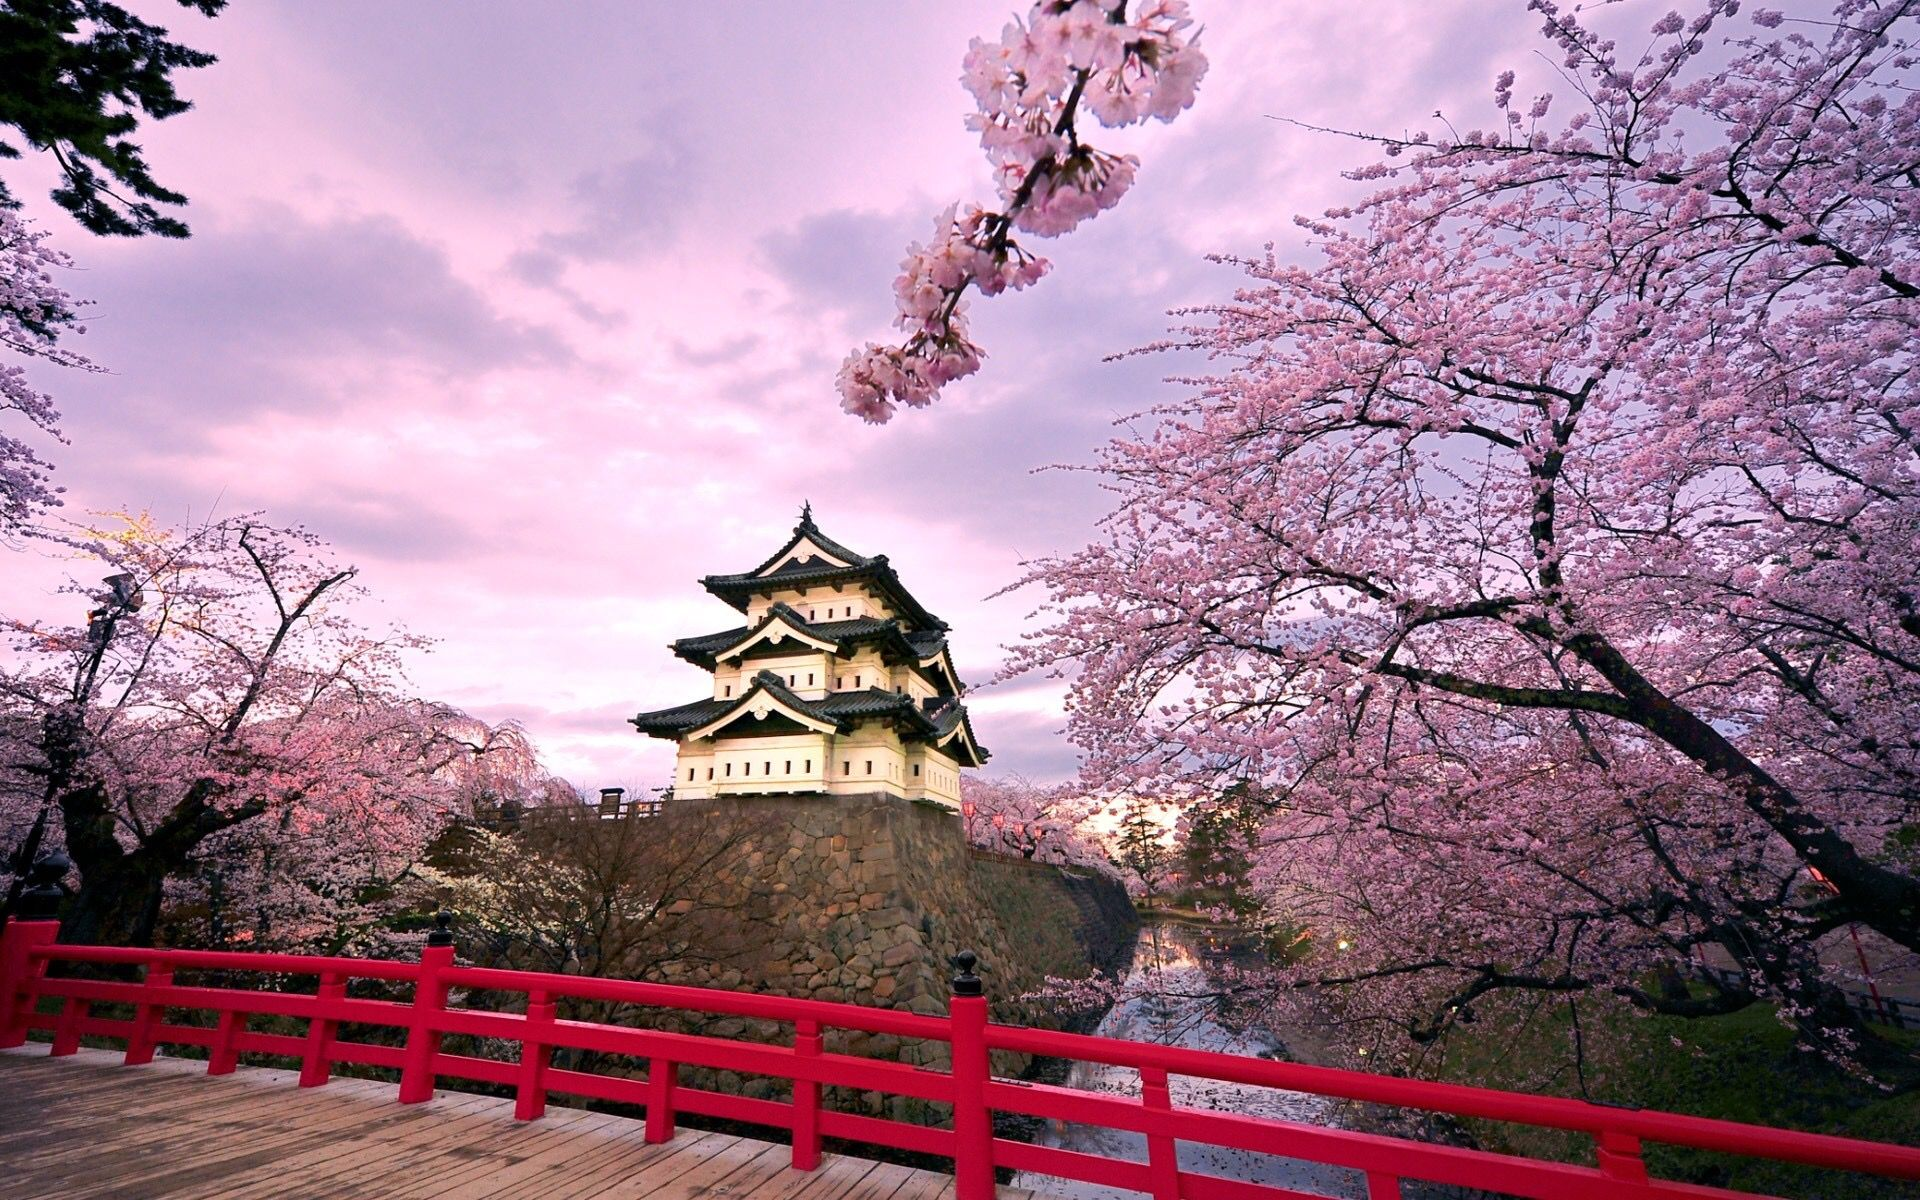 Pin By Glei On Awesome Beauty Japanese Castle Hirosaki Cherry Blossom Japan